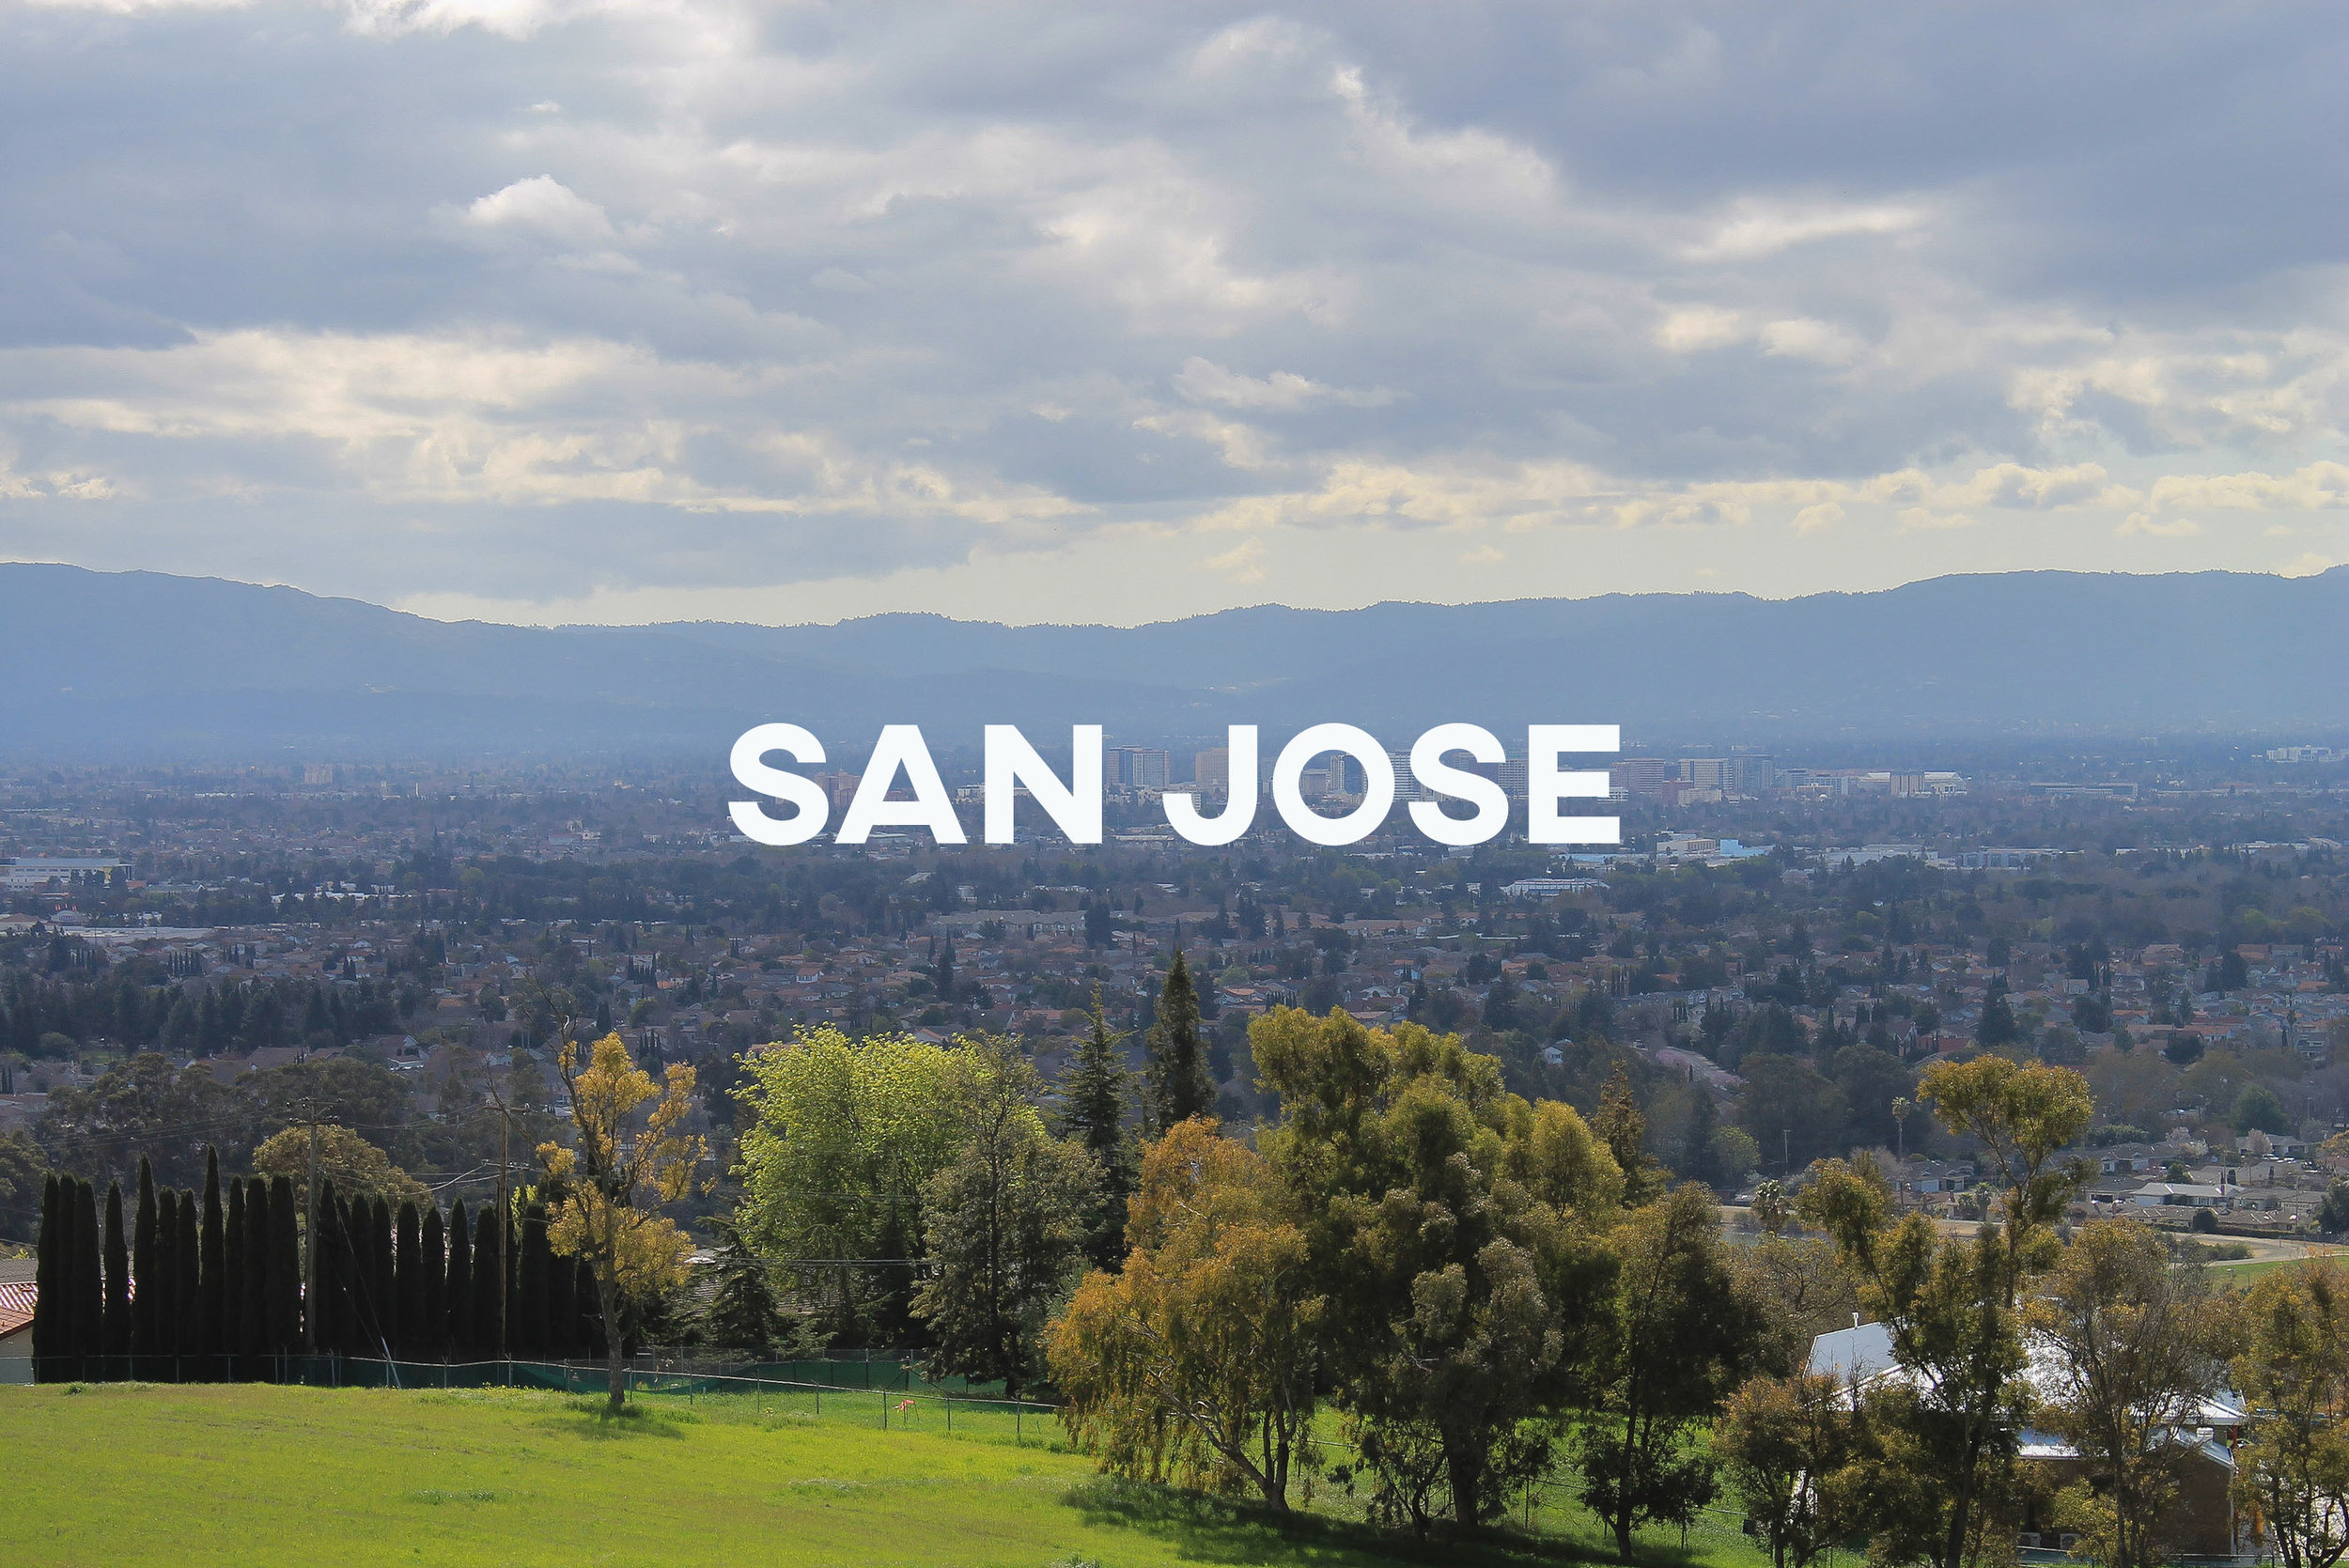 San Jose - The financial and cultural center of Silicon Valley